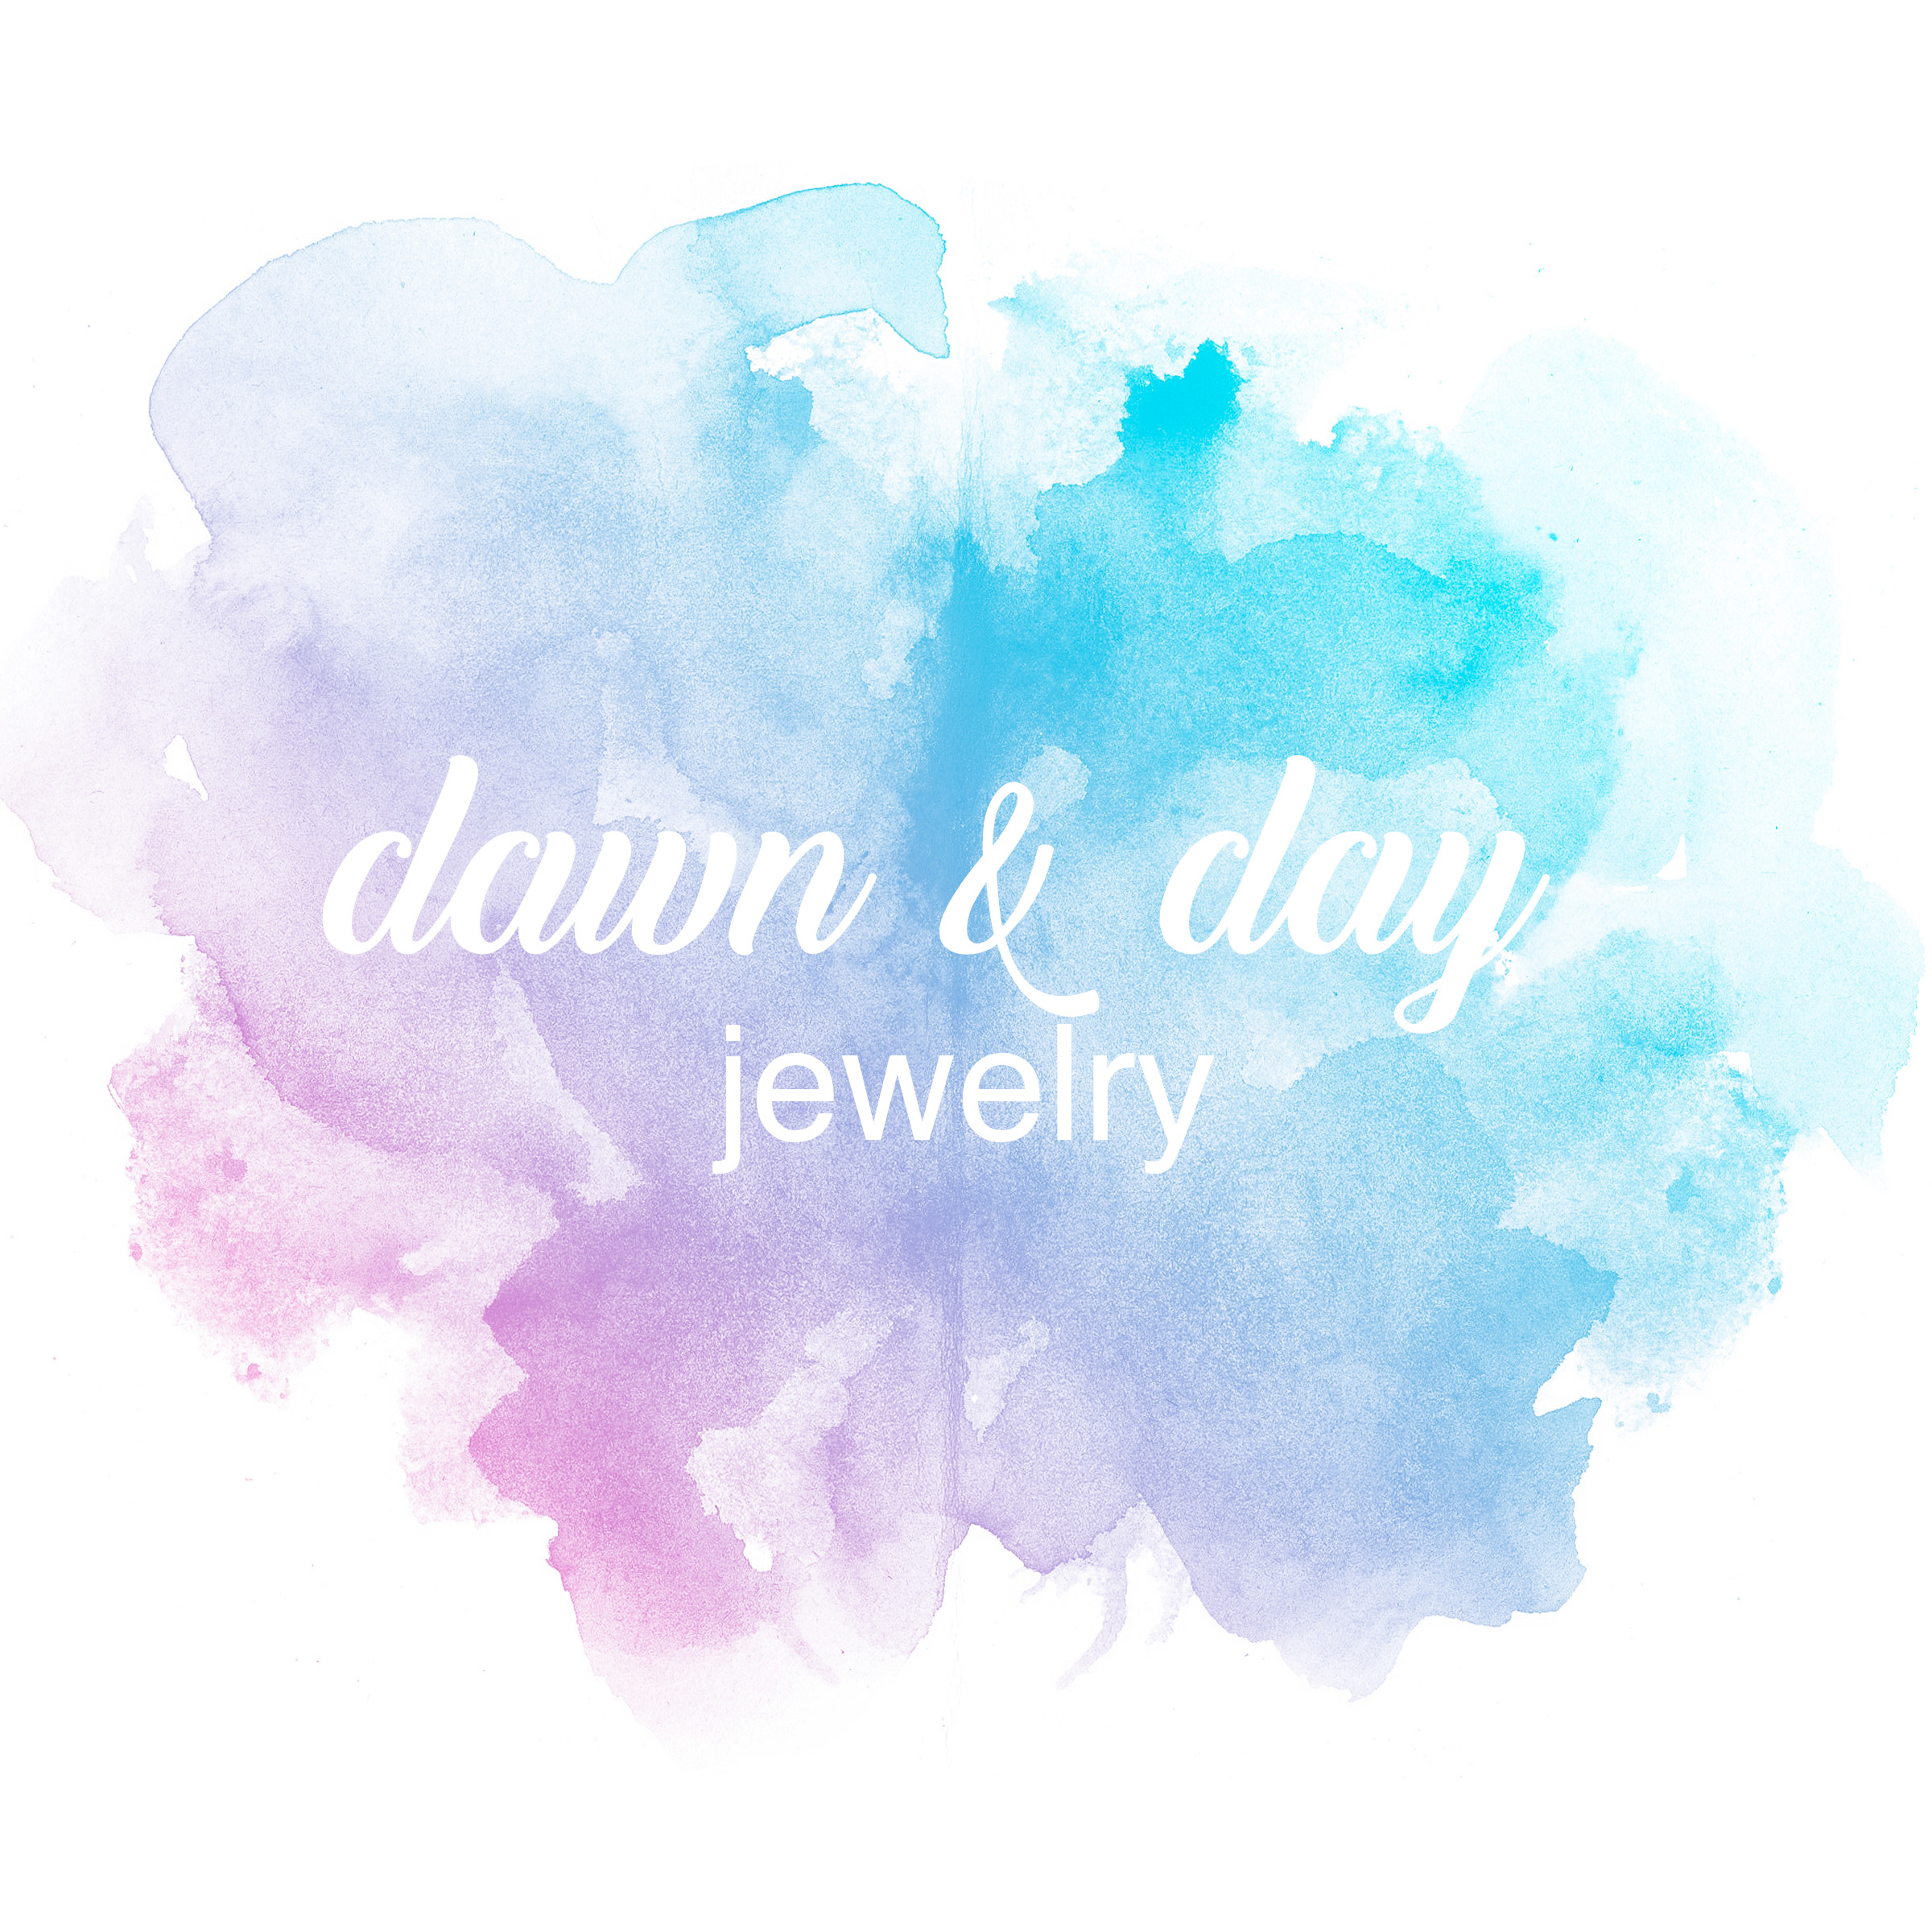 Dawn & Day Jewelry